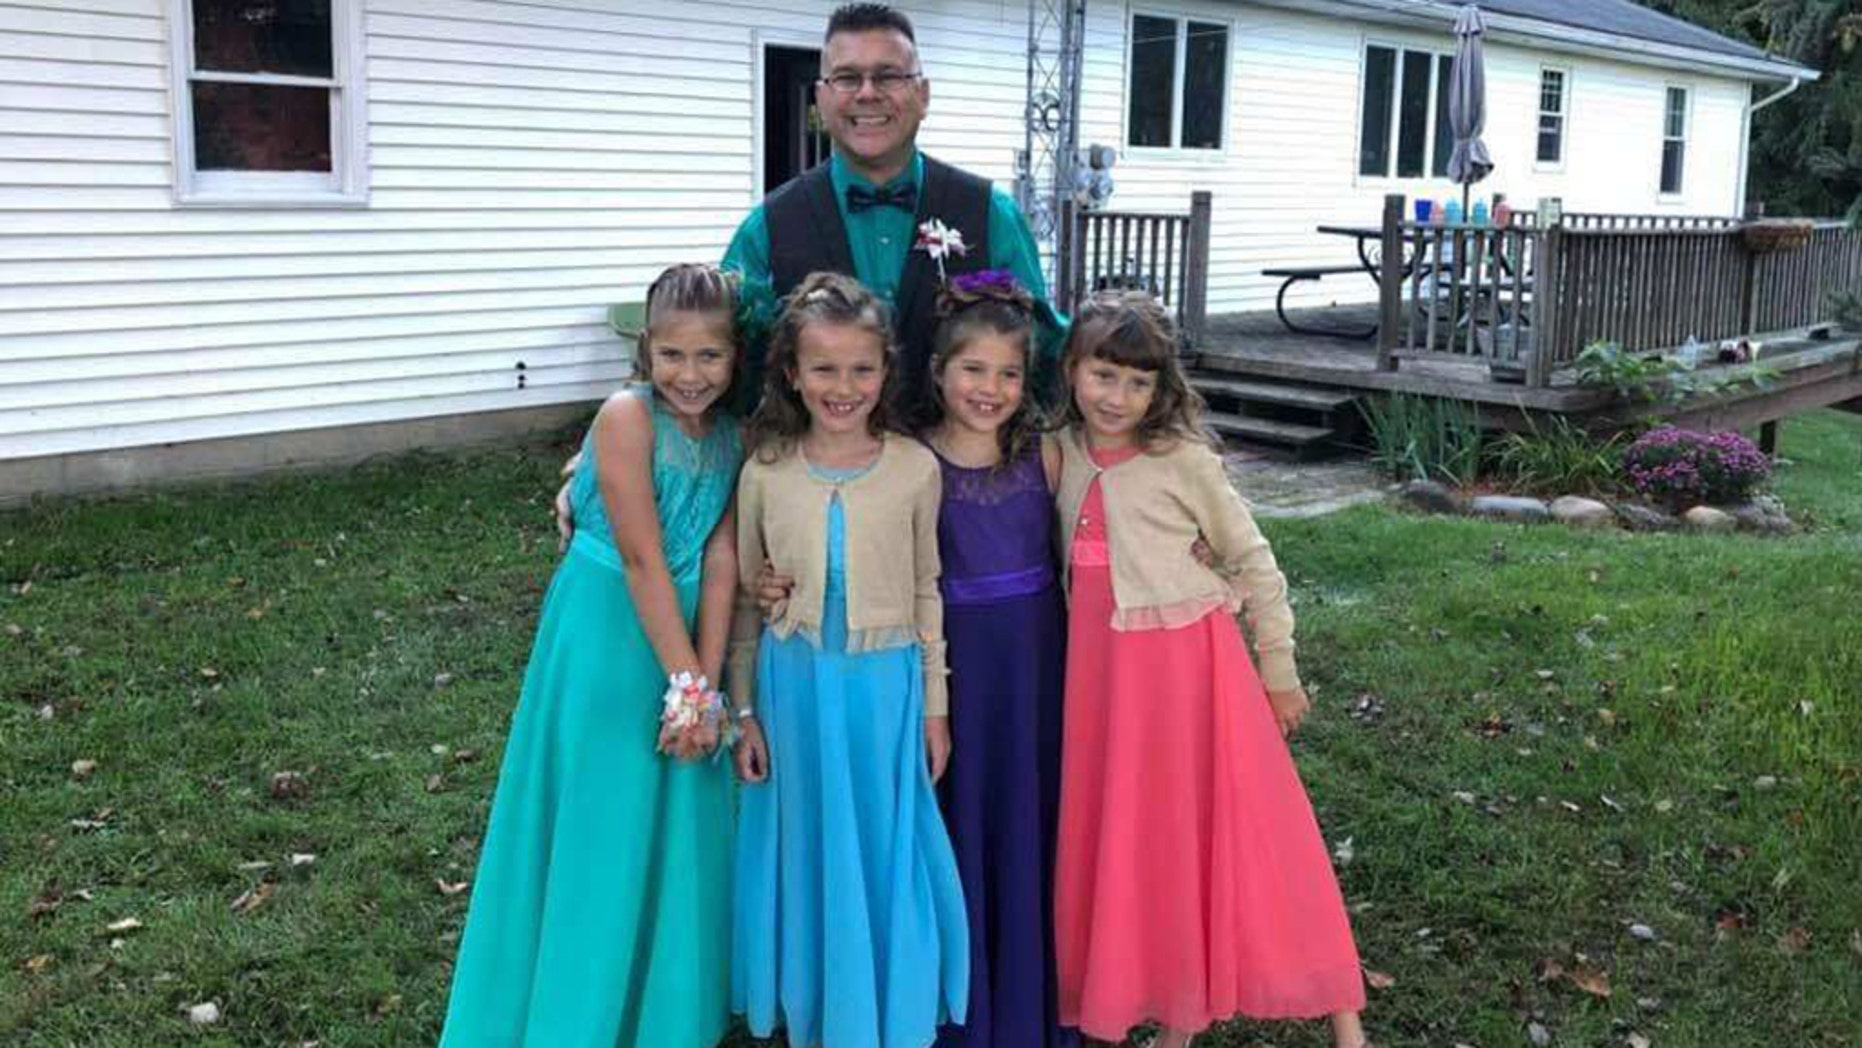 Steve Culbert heads to the dance with his two daughters and Avery and Alivia Reece. Left to right Hailey Culbert, Avery Reece, Aliyah Culbert and Alivia Reece